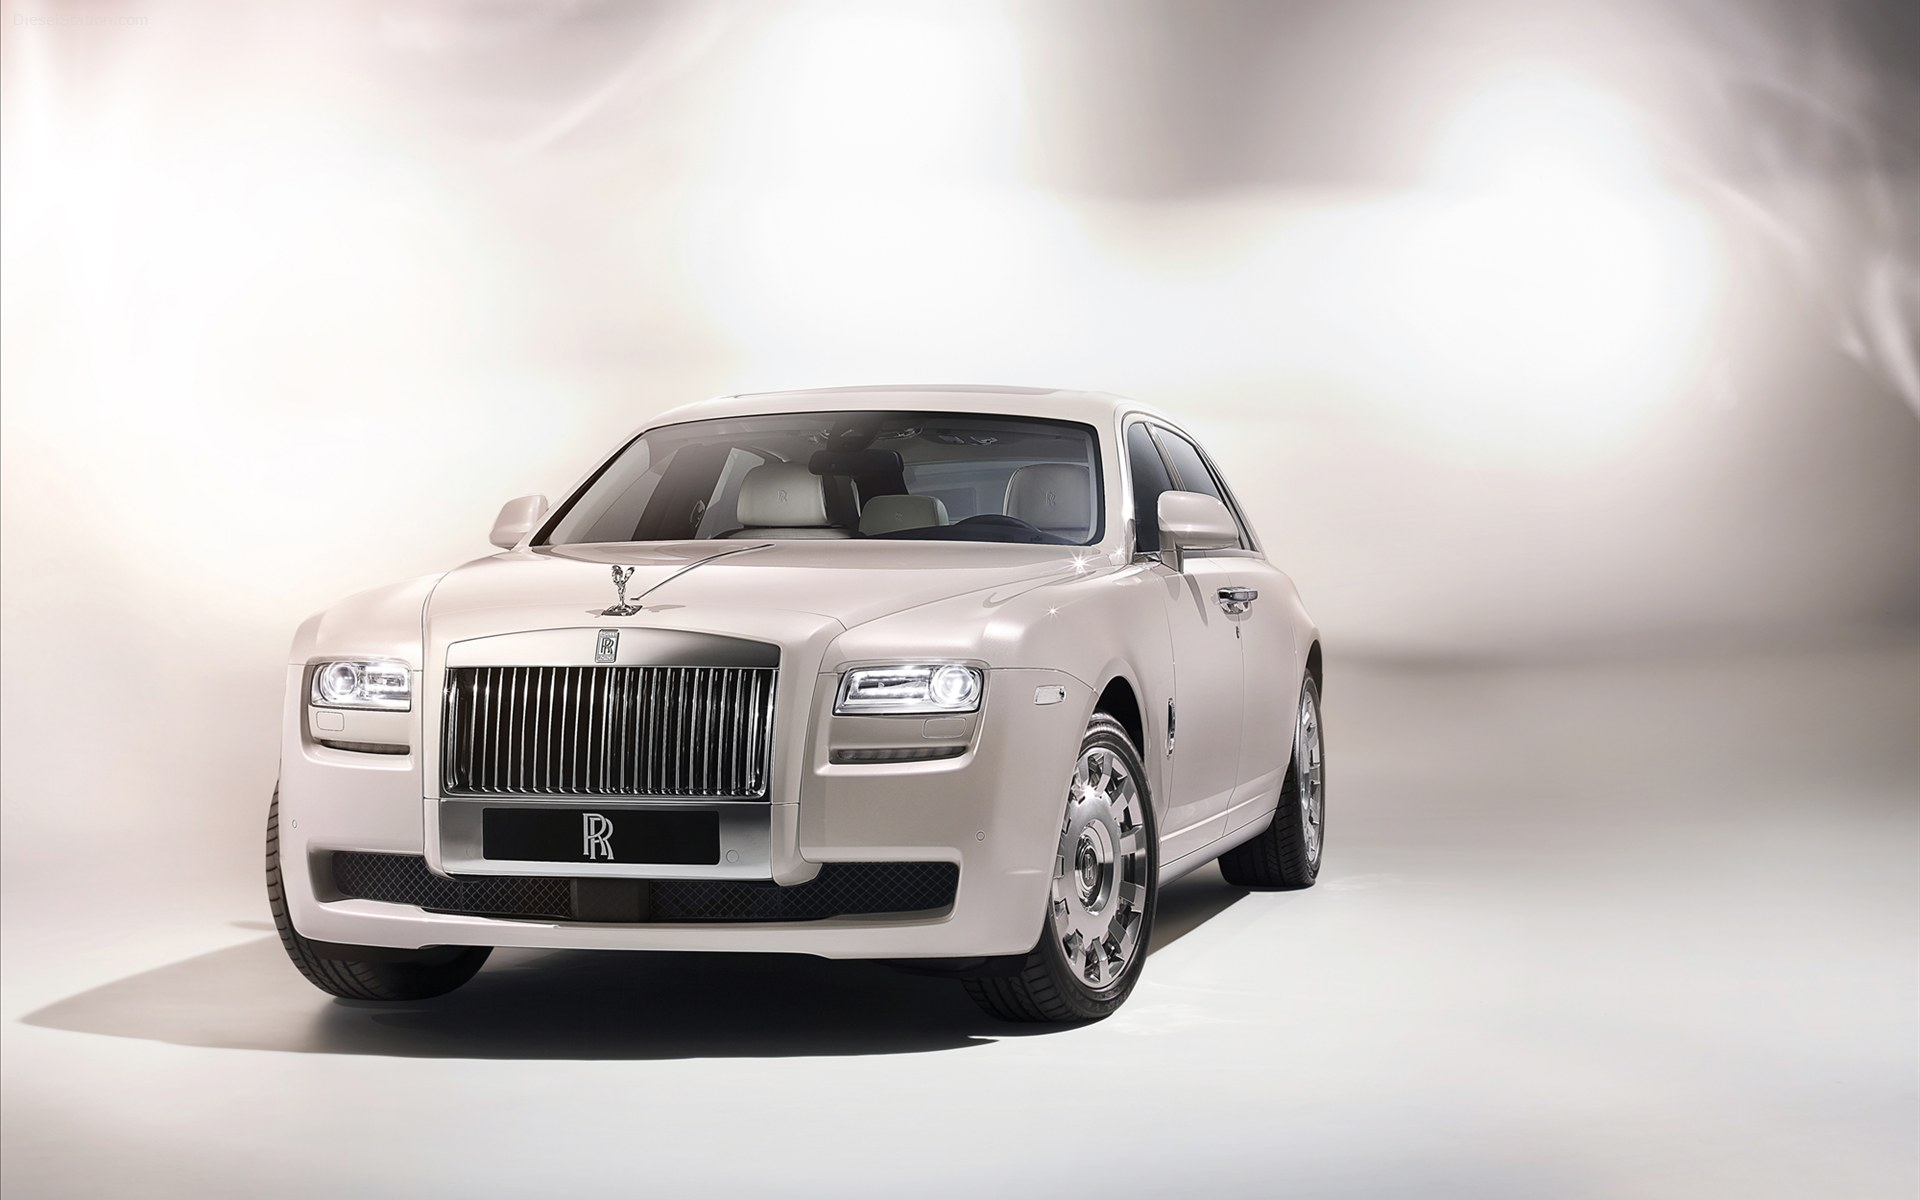 Rolls royce ghost six senses 2012 wallpaper hd car wallpapers rolls royce ghost six senses 2012 voltagebd Gallery